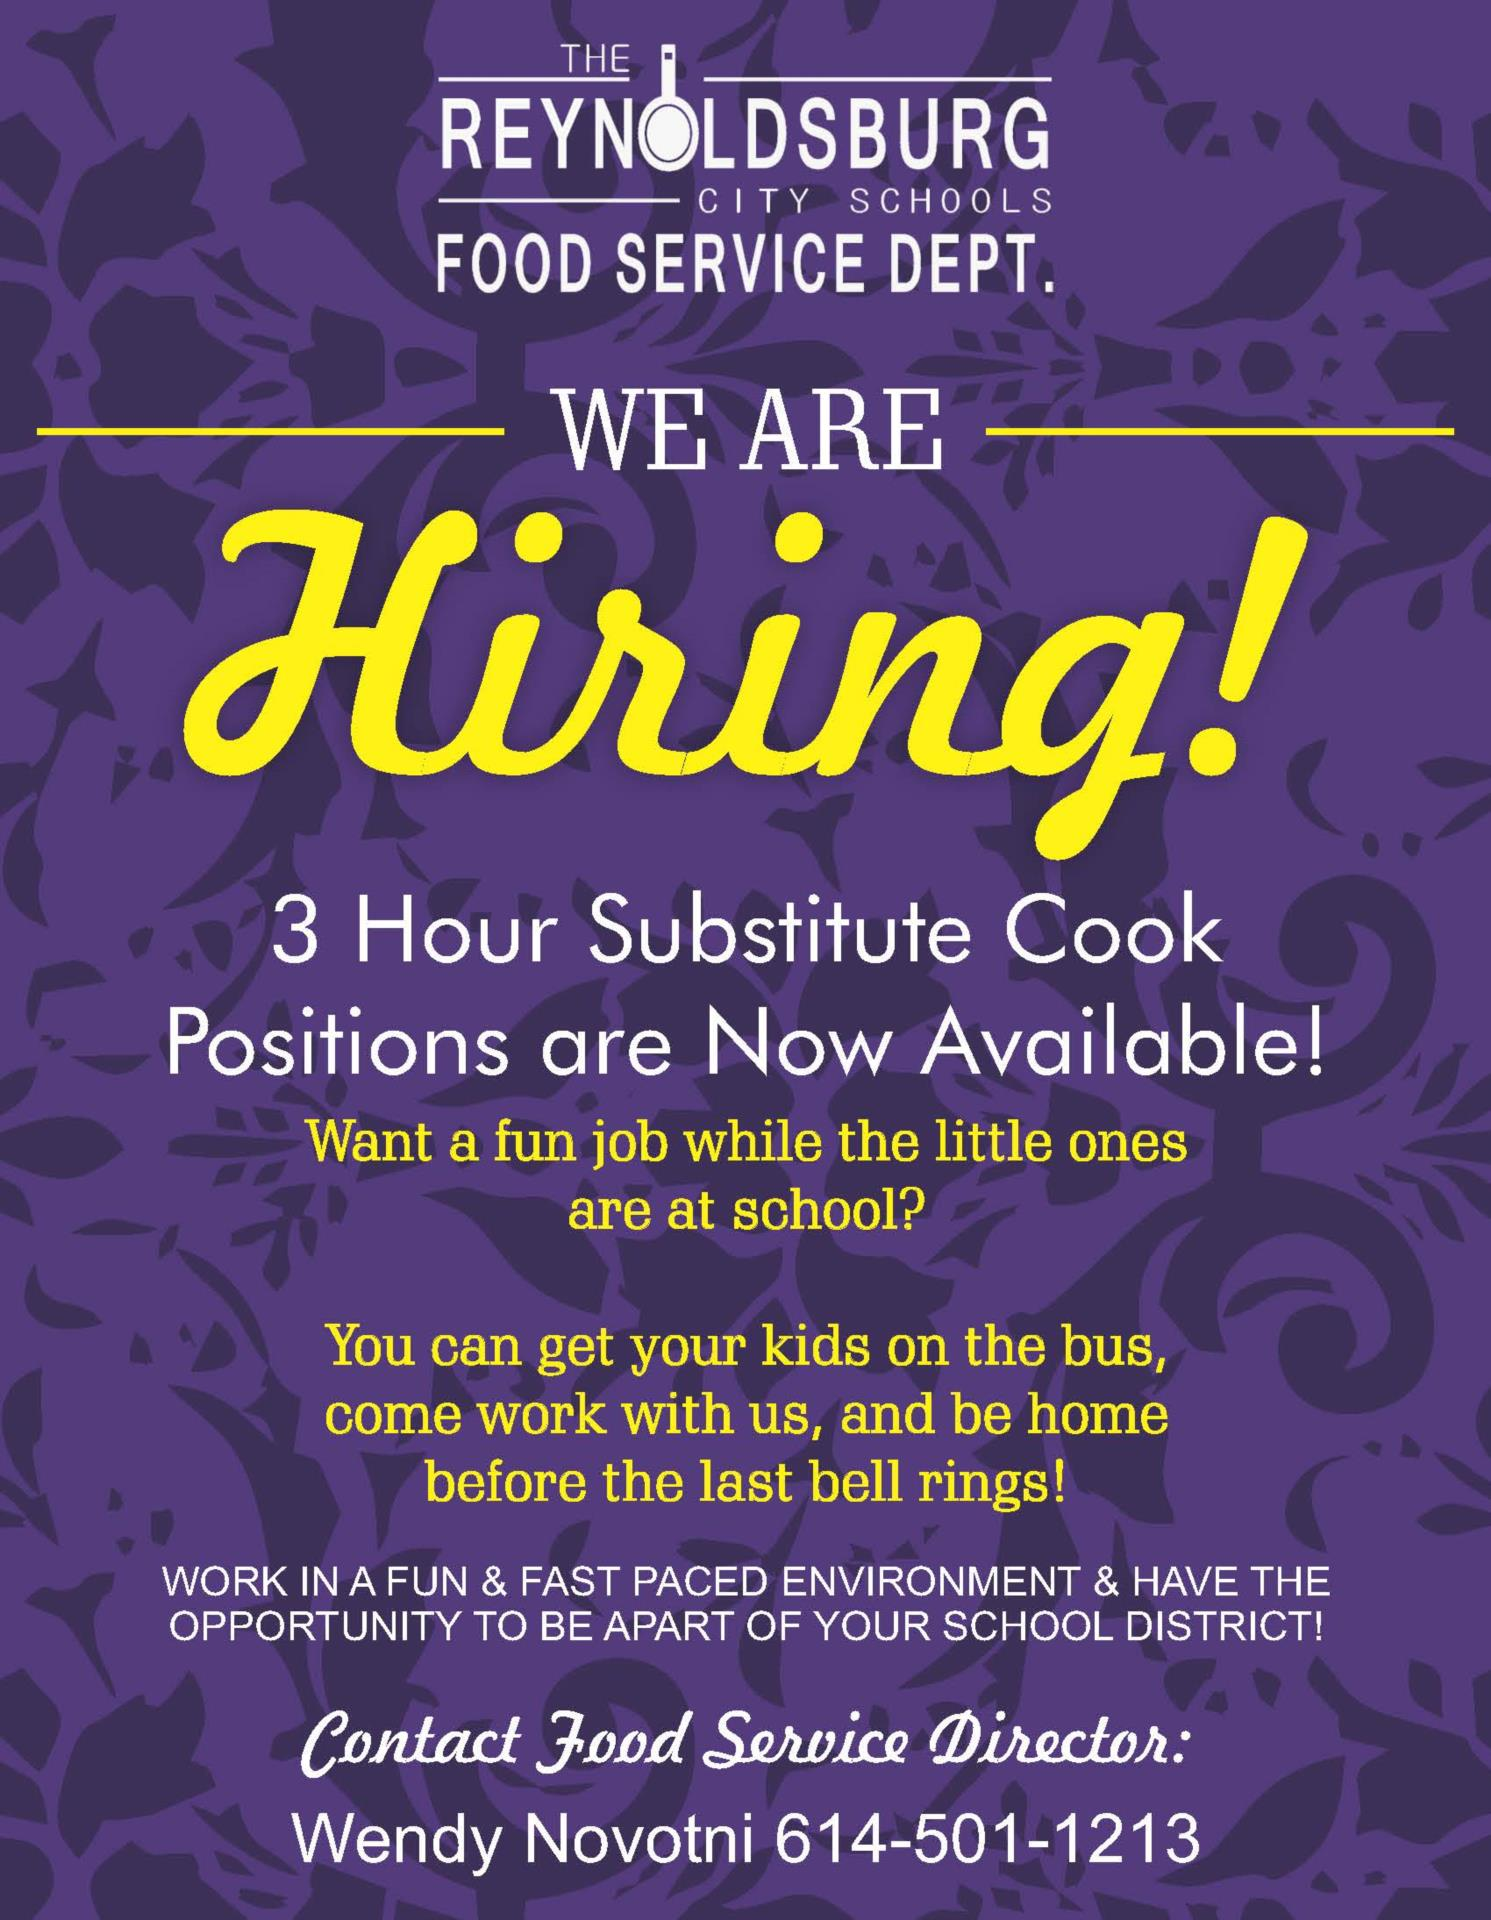 Job Posting for Sub Cooks